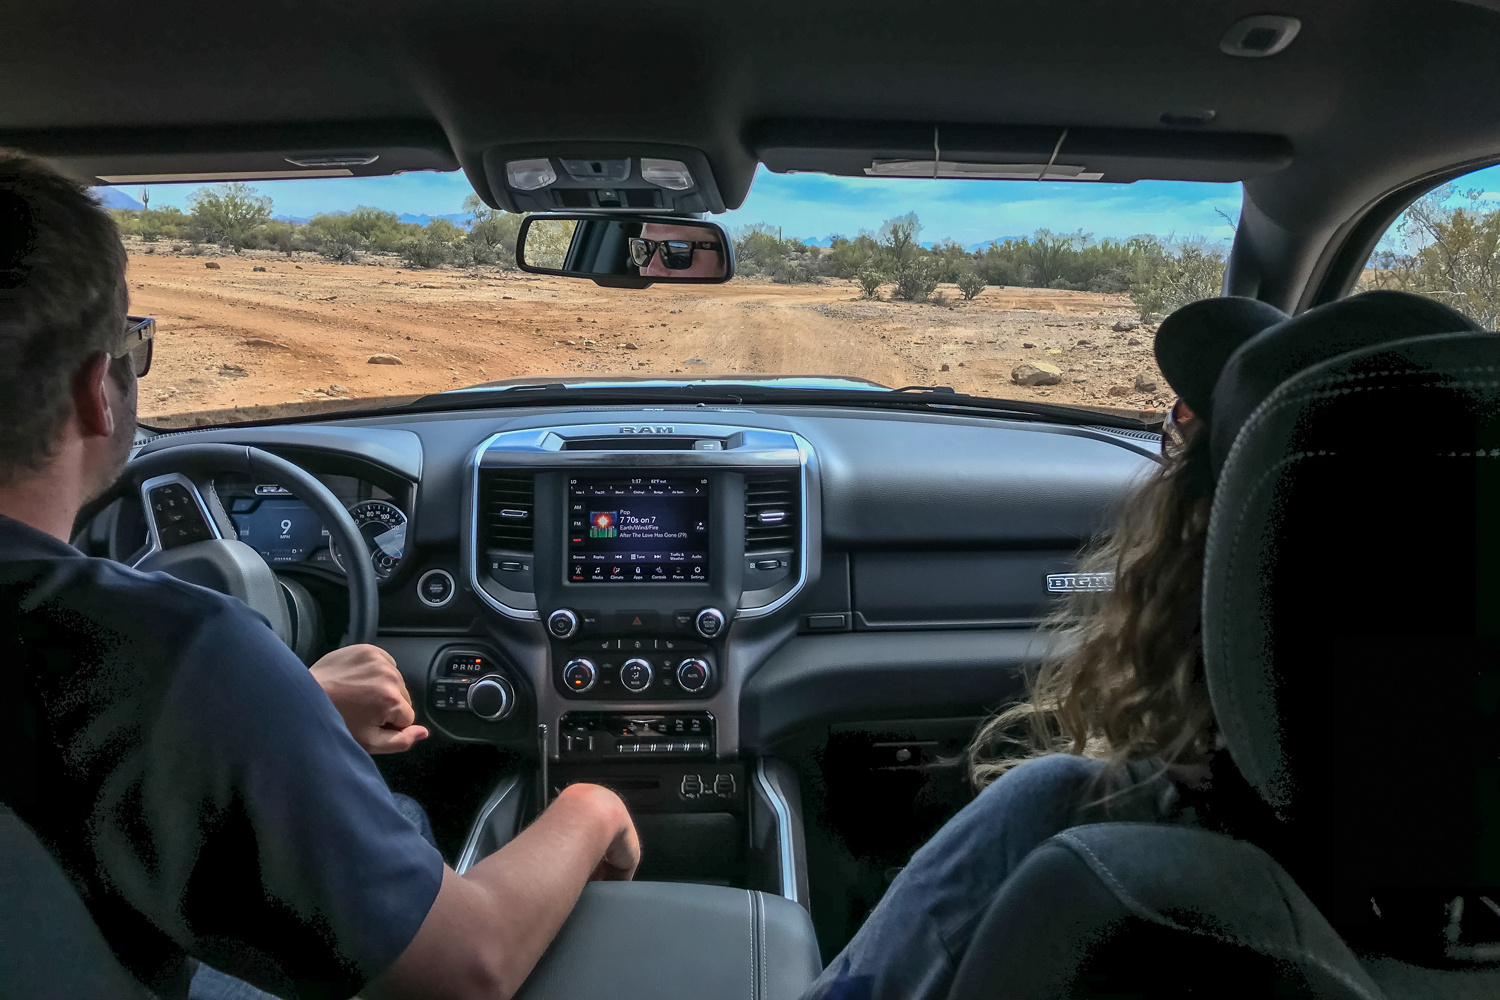 2019 RAM 1500 Review: 'Bigger Everything' | GearJunkie